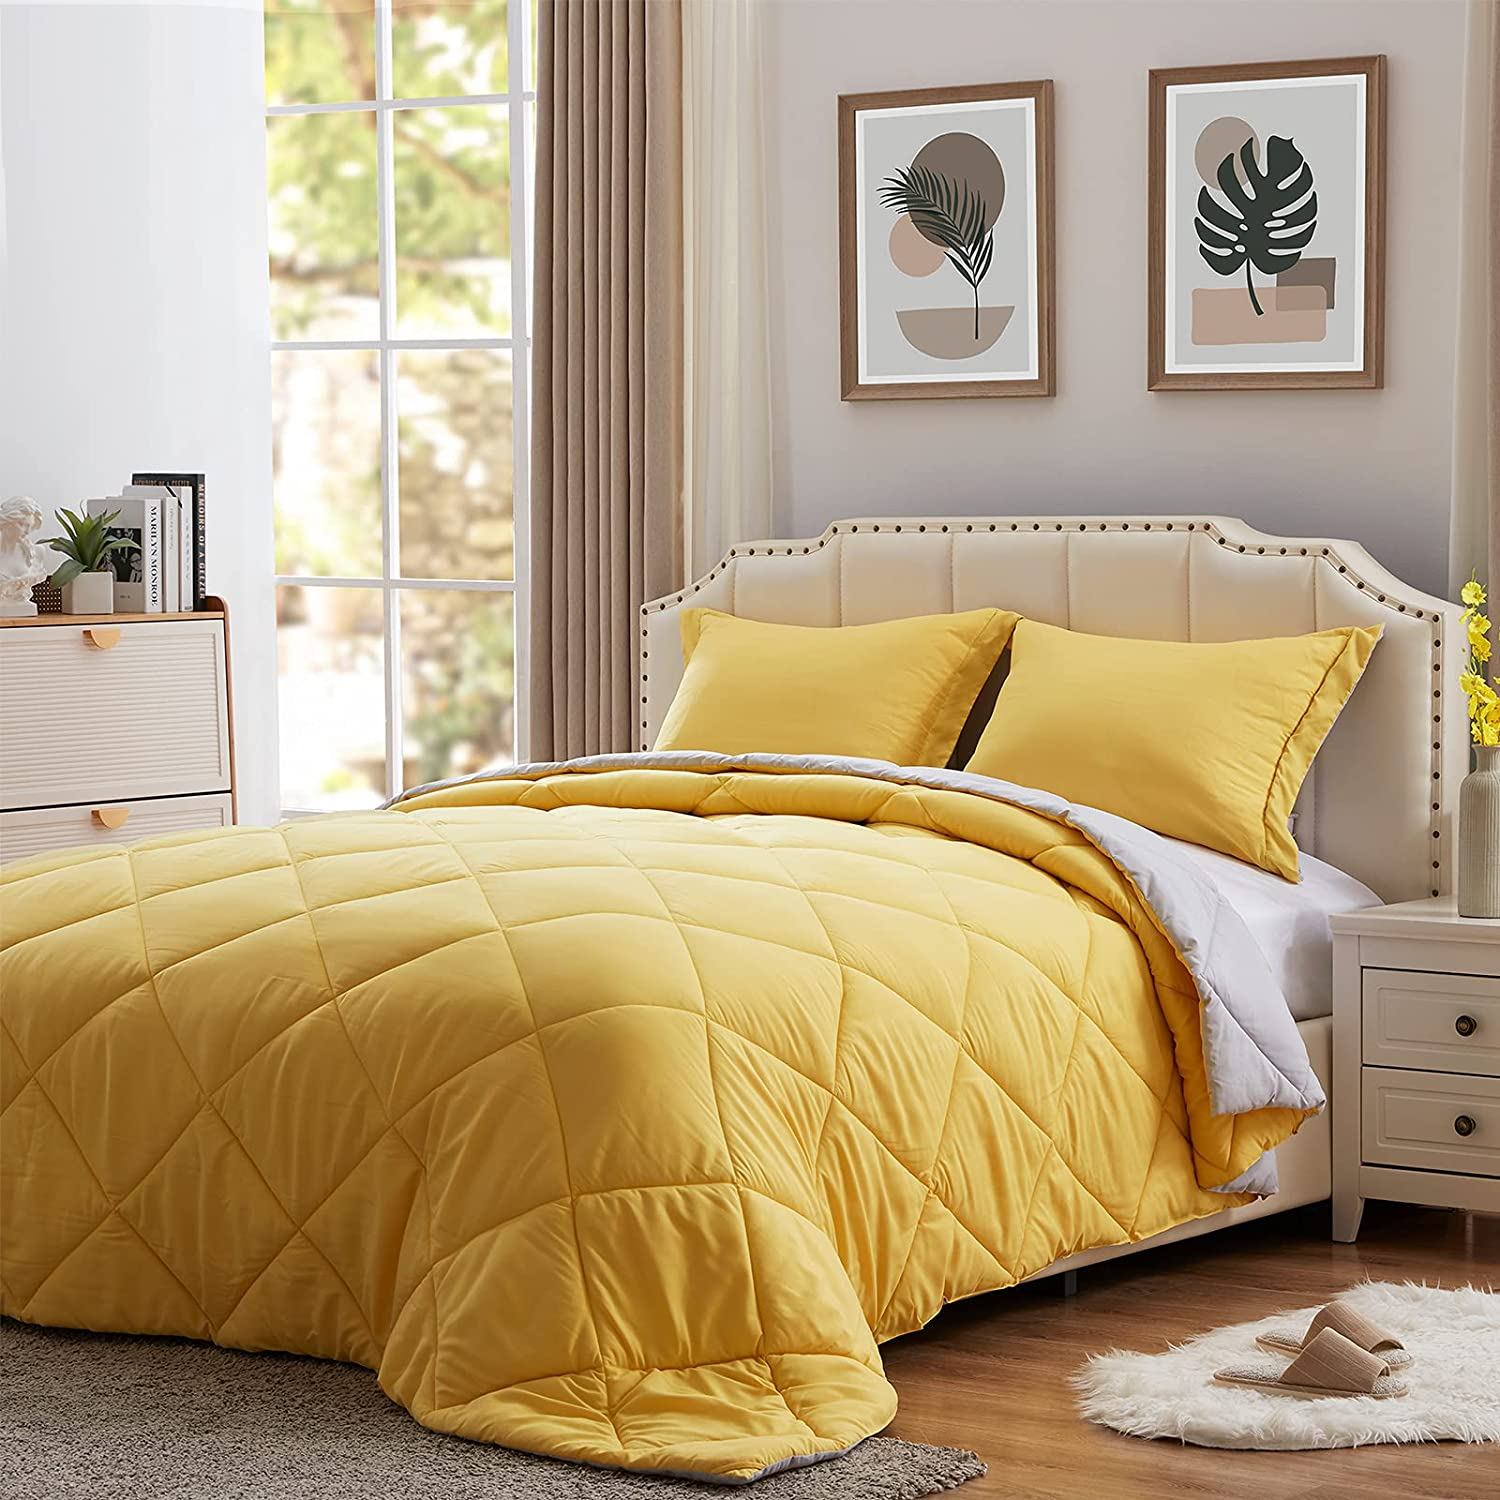 New products world's highest quality popular NexHome Lightweight Comforter Set Queen Down S Size Alternative Surprise price